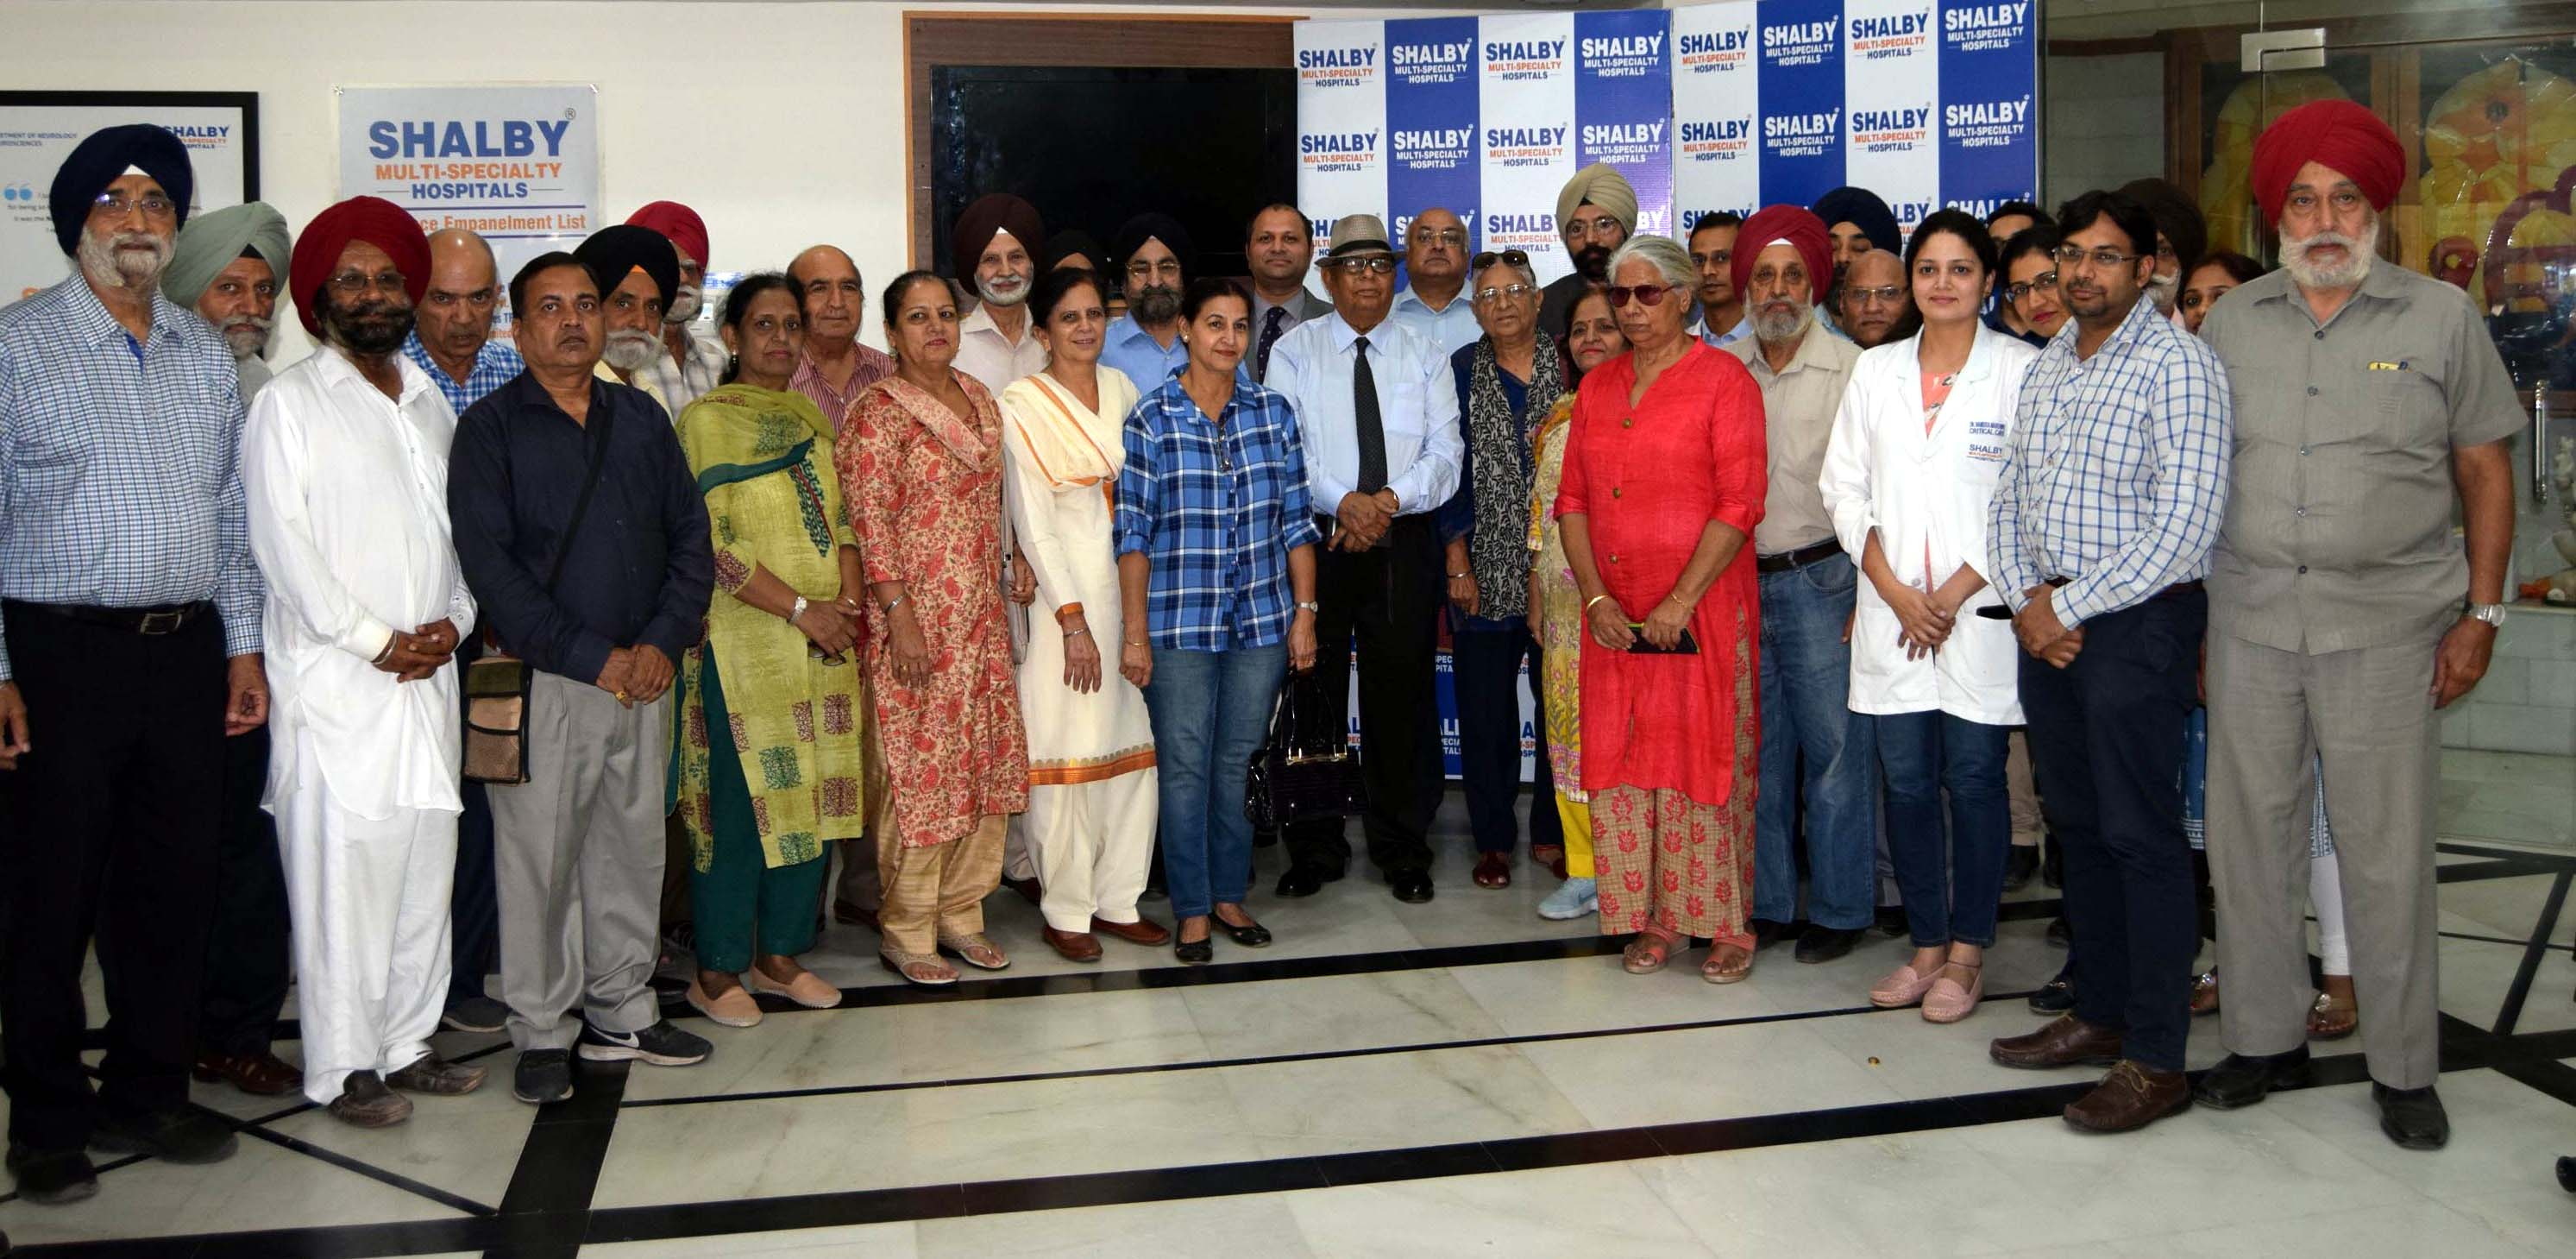 50 senior citizens attend 'meet your doctors' program